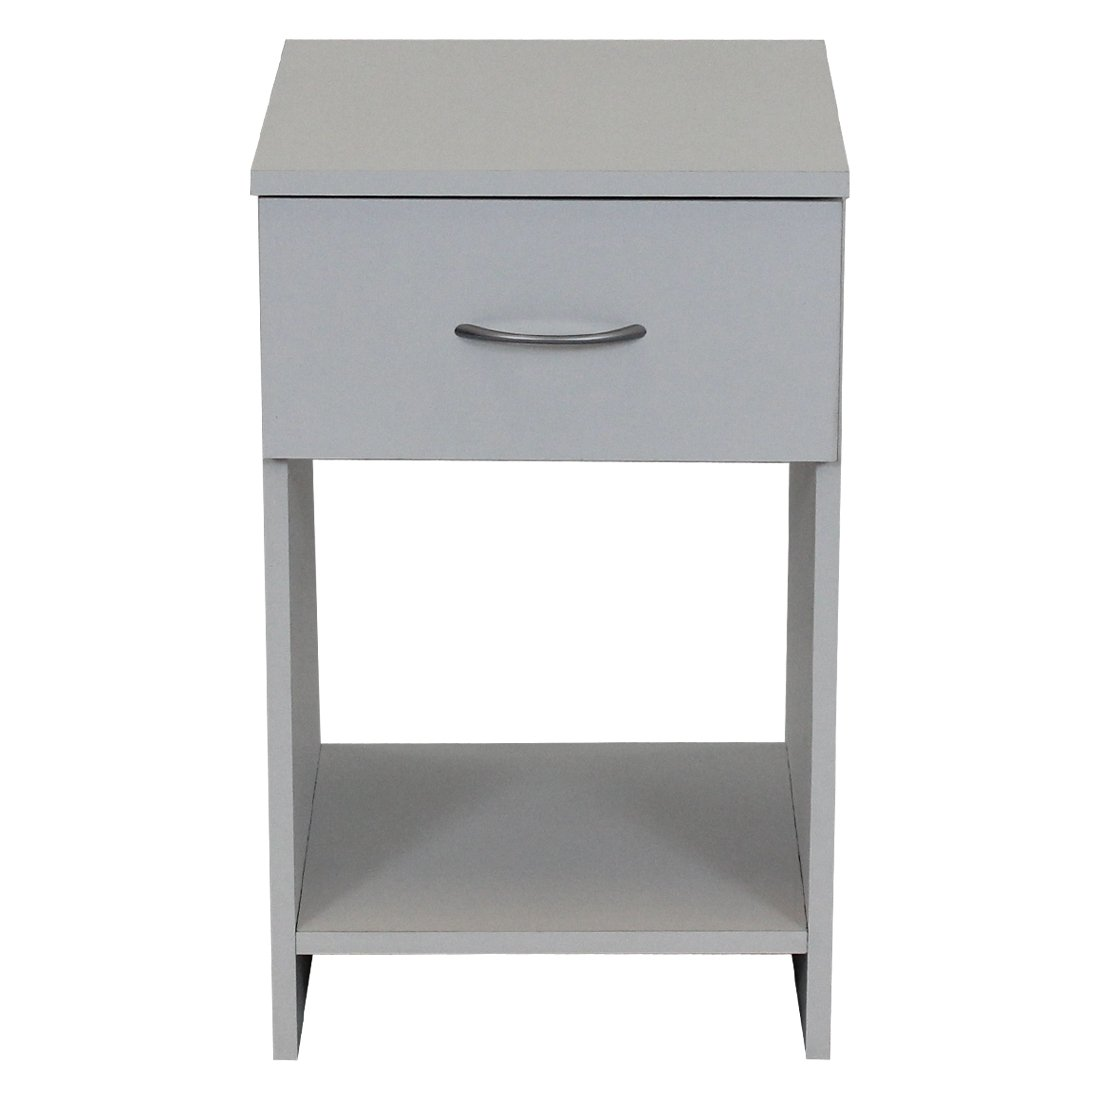 Devoted2Home Budget Bedroom Furniture with 1-Drawer Bedside Cabinet, Wood, White, 33 x 34.29 x 56.5 cm AA510101BO2